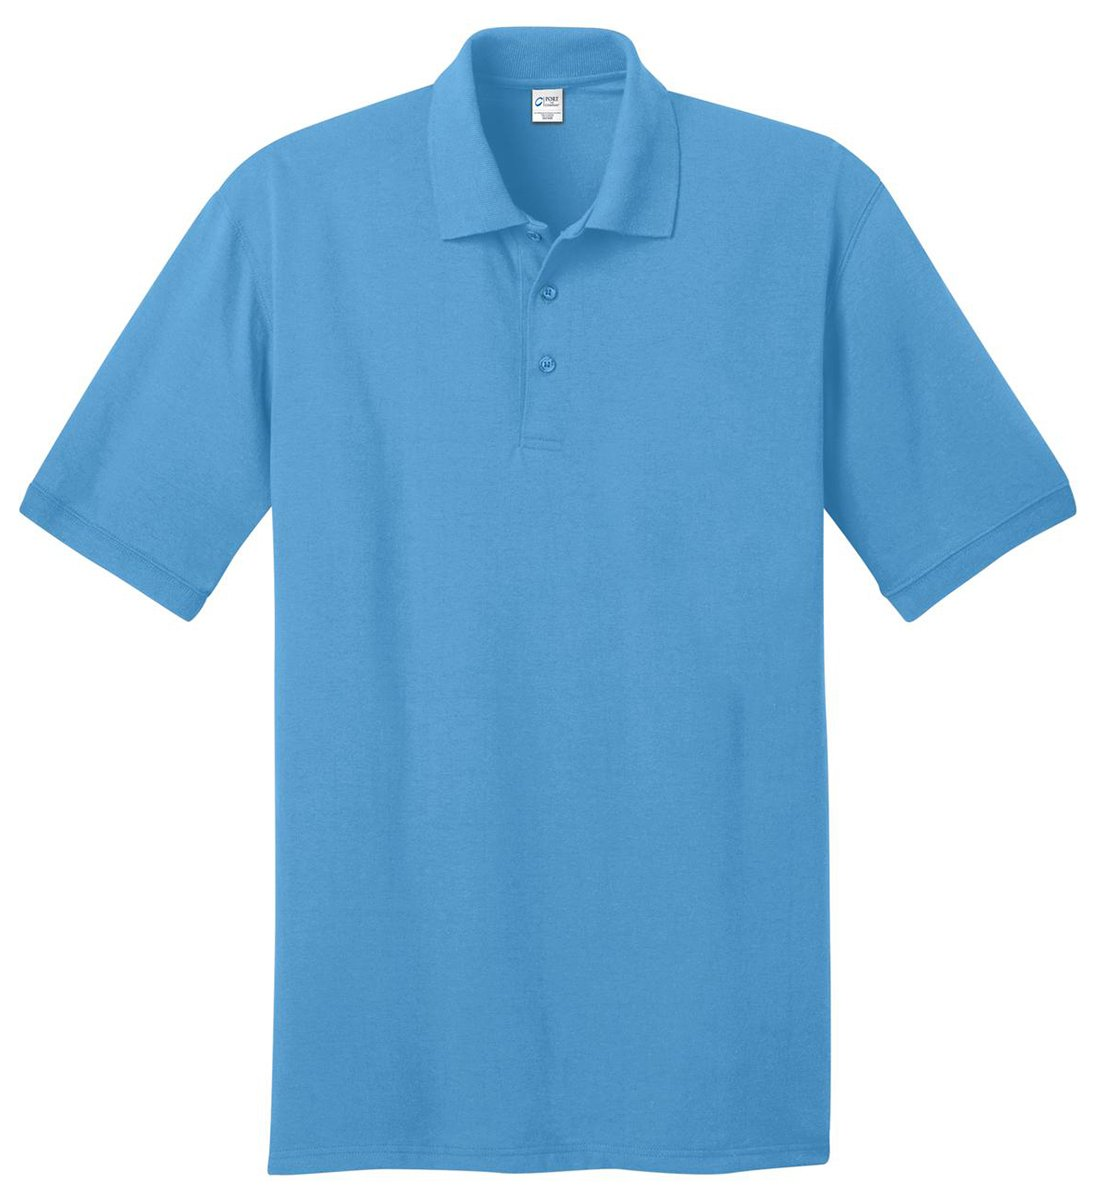 Port & Company Men's Big And Tall Knit Polo Jersey 3X Tall- Light Blue